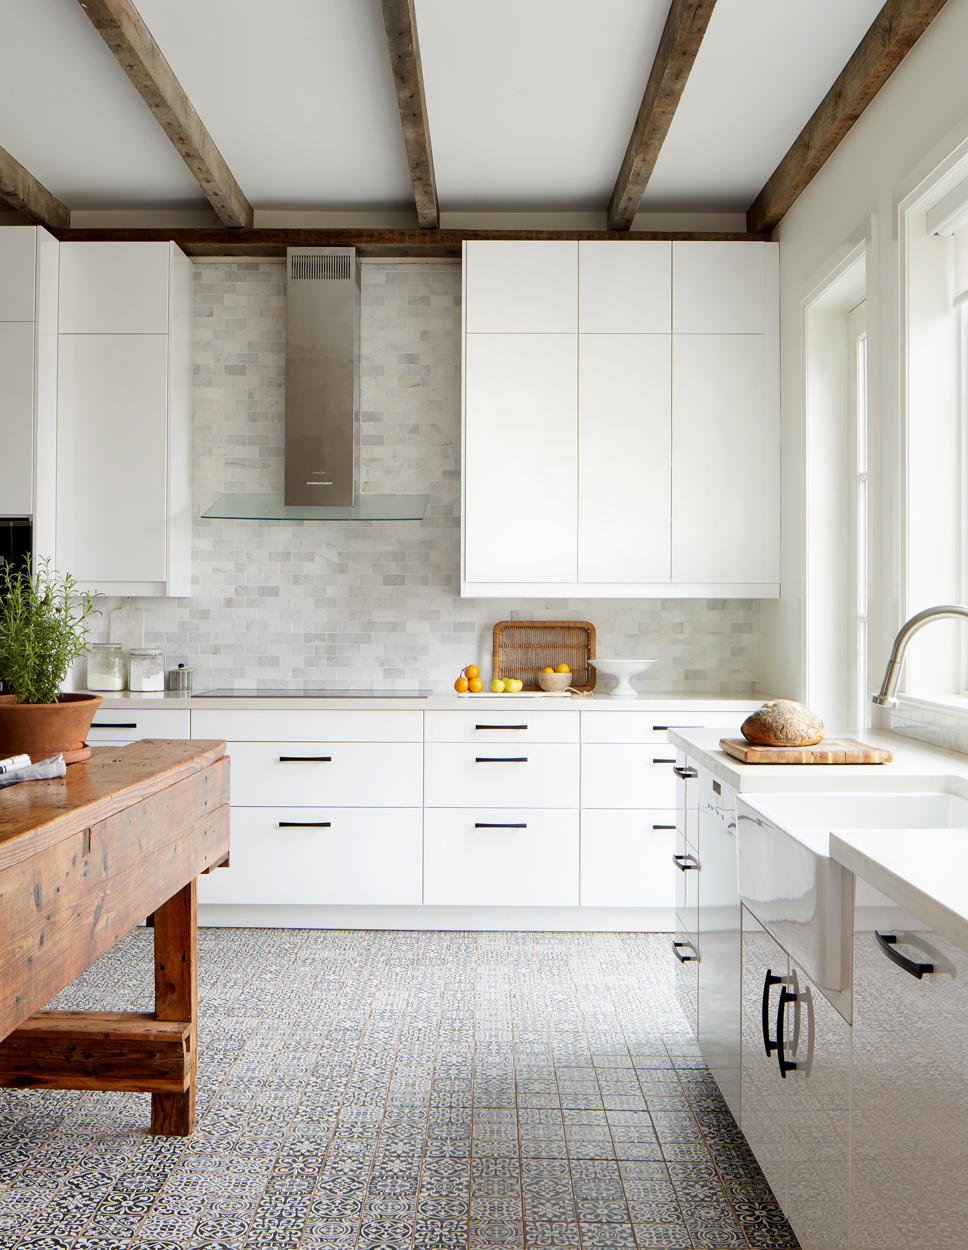 Vintage inspired floor tiles add to the modern chic farmhouse vibe.